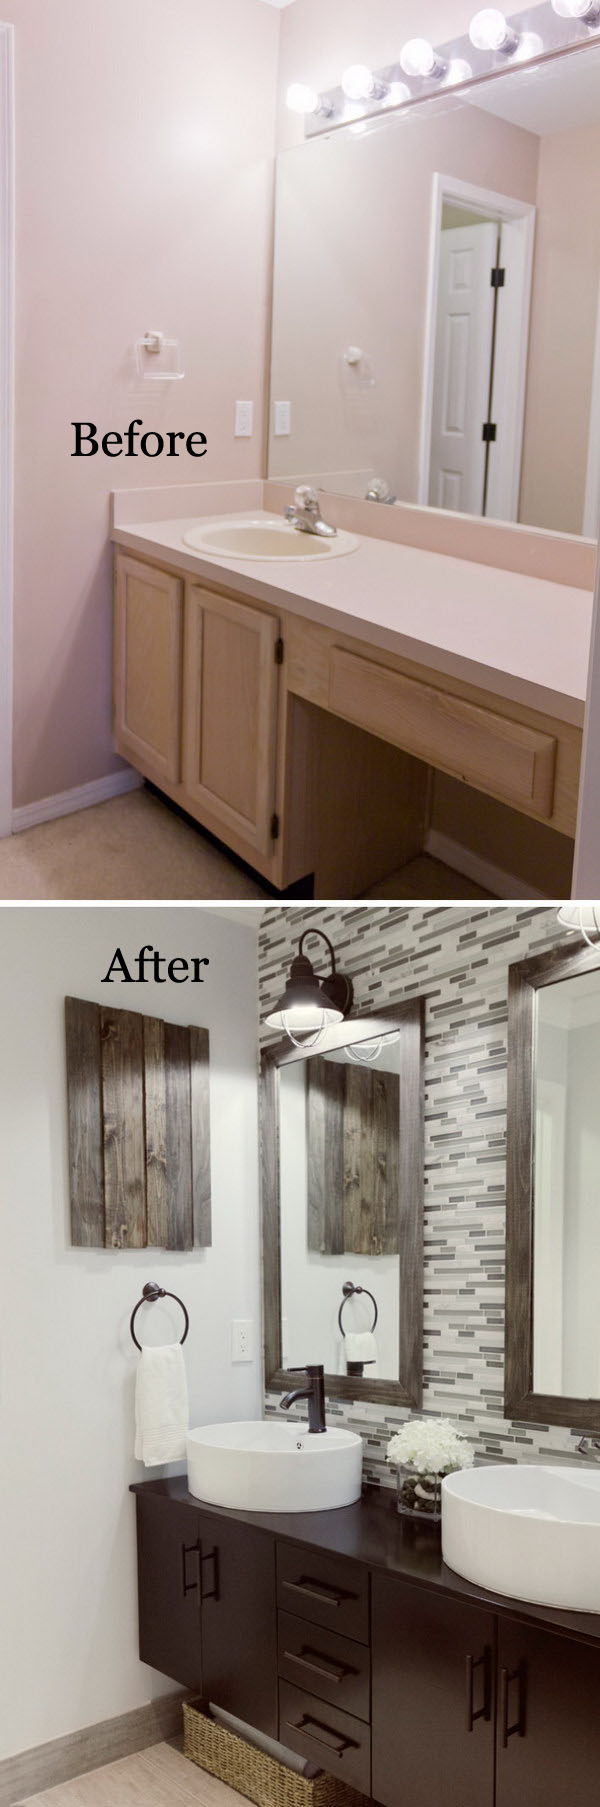 Before And After Makeovers 30 Awesome Bathroom Remodeling Ideas 2018